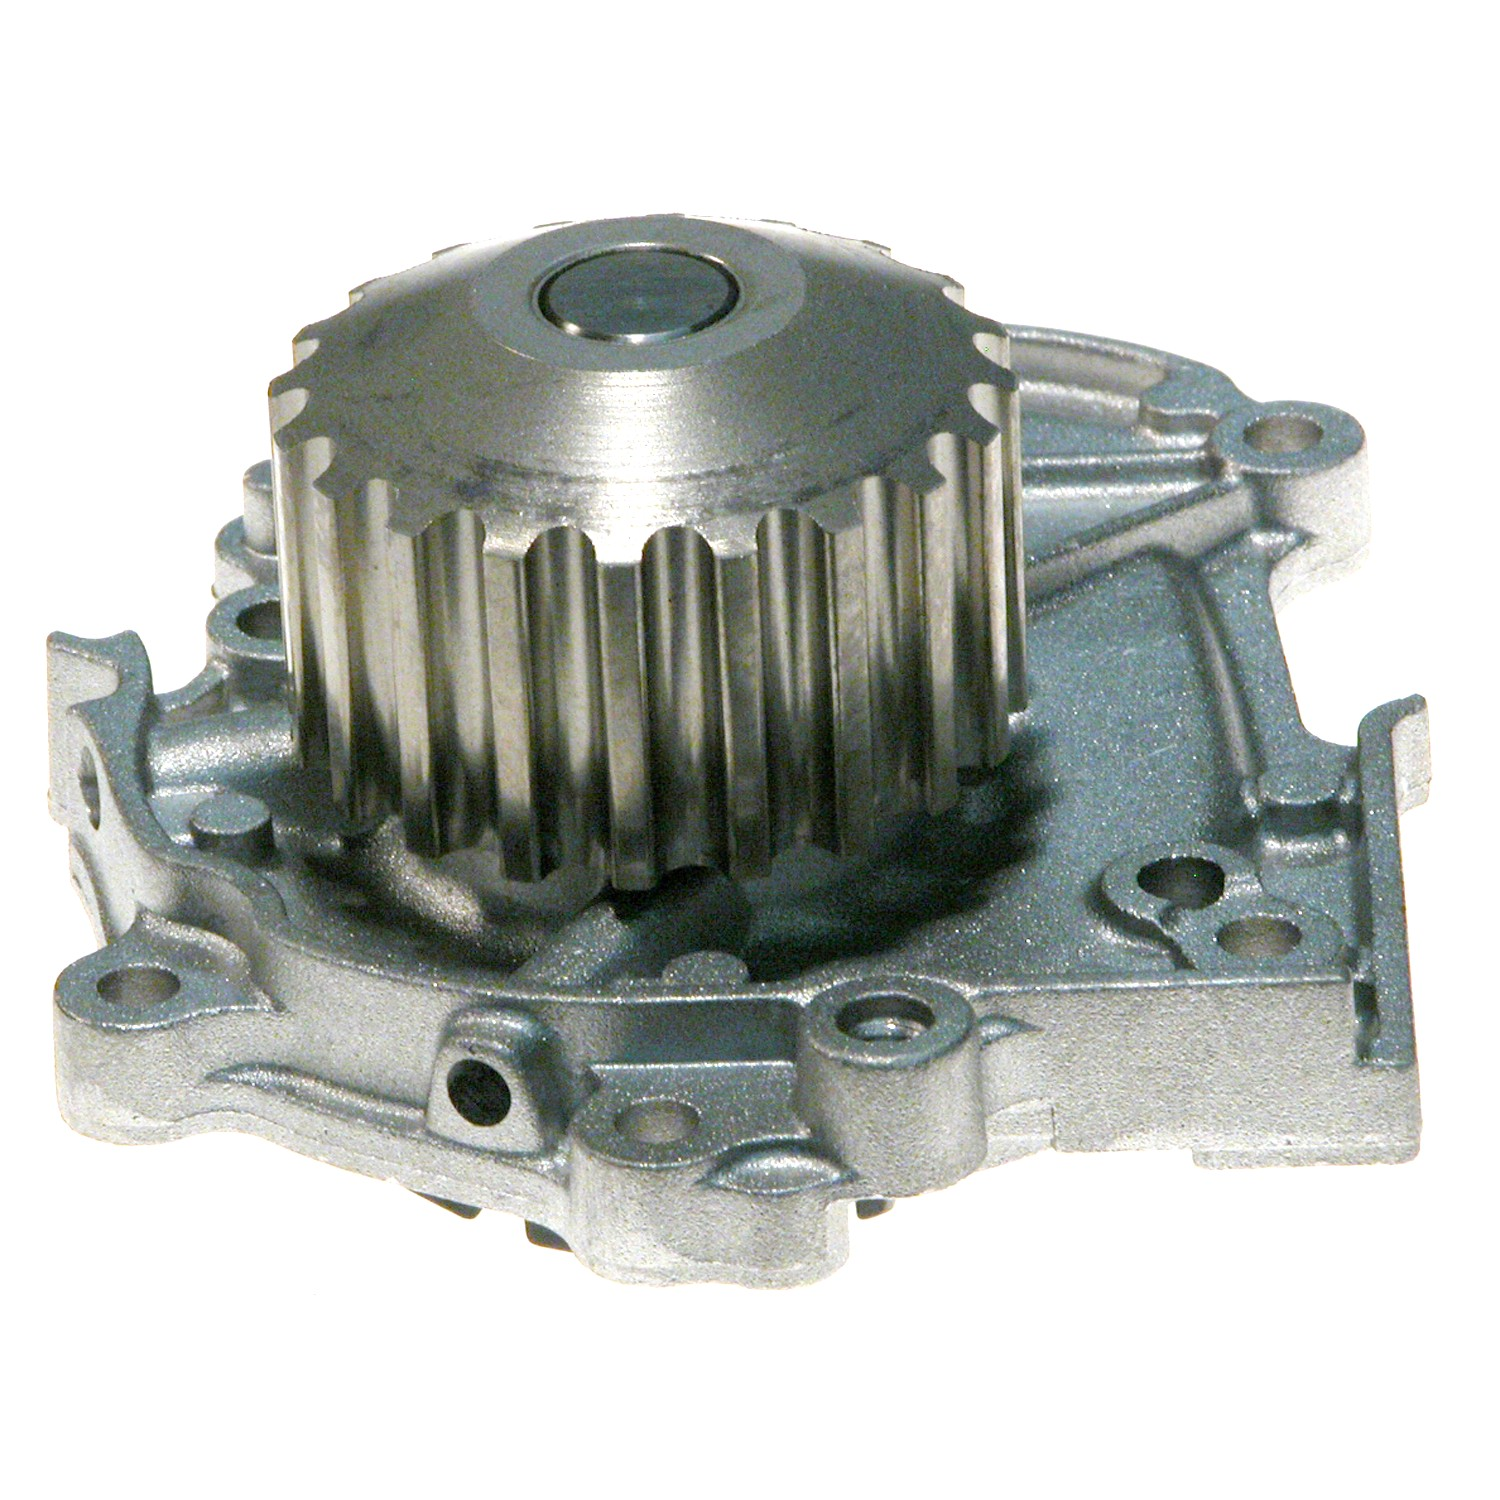 ... 1998 Acura TL Engine Water Pump AW AW9347